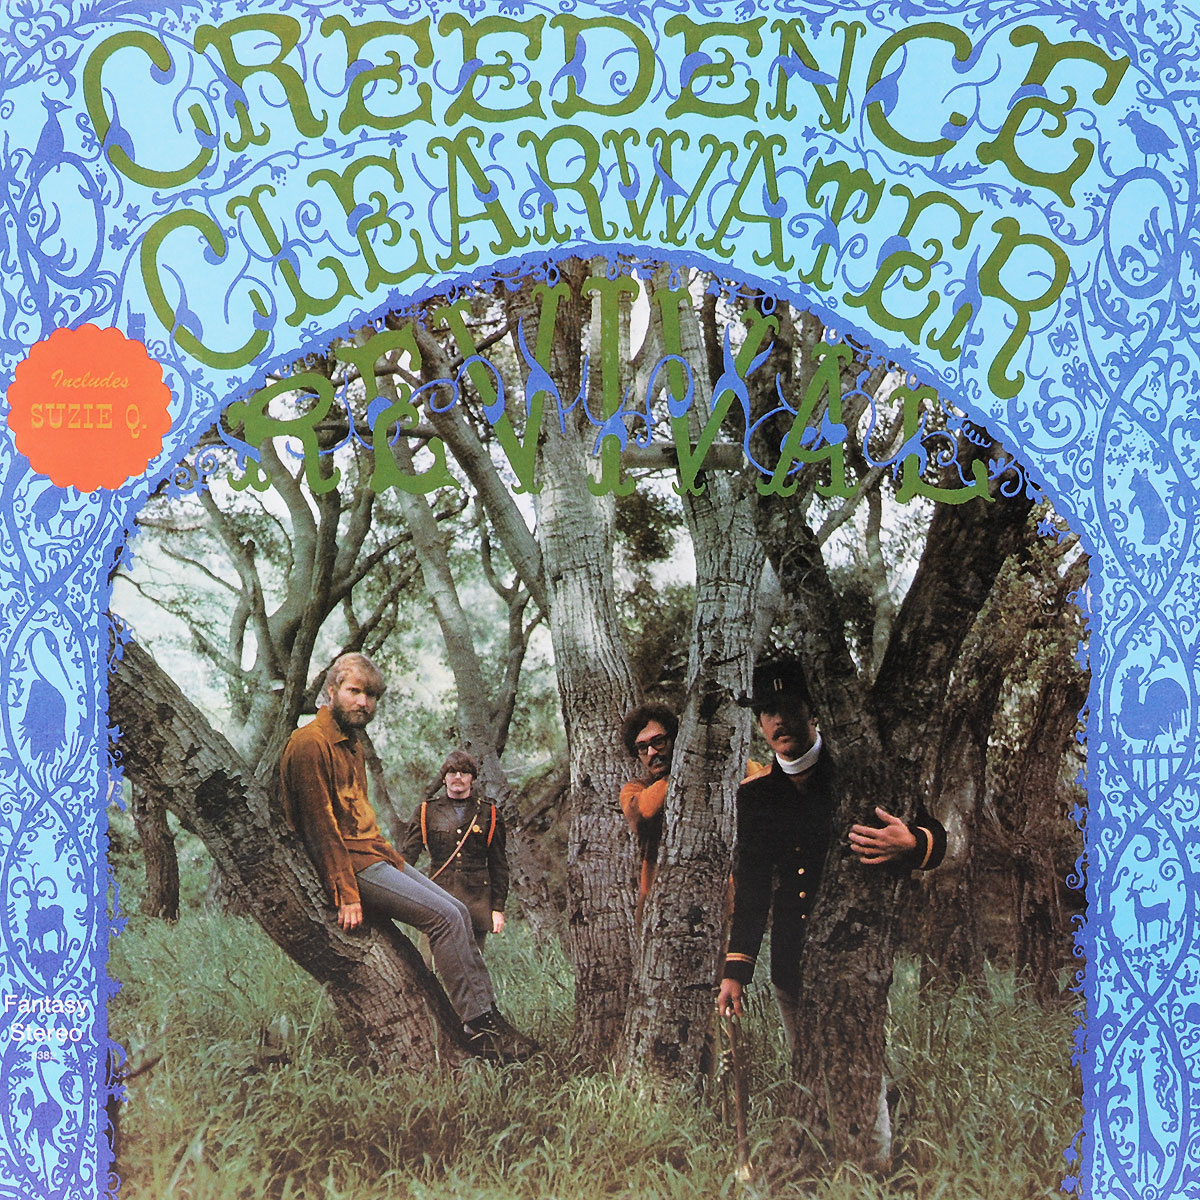 Creedence Clearwater Revival Creedence Clearwater Revival. Creedence Clearwater Revival (LP) revival